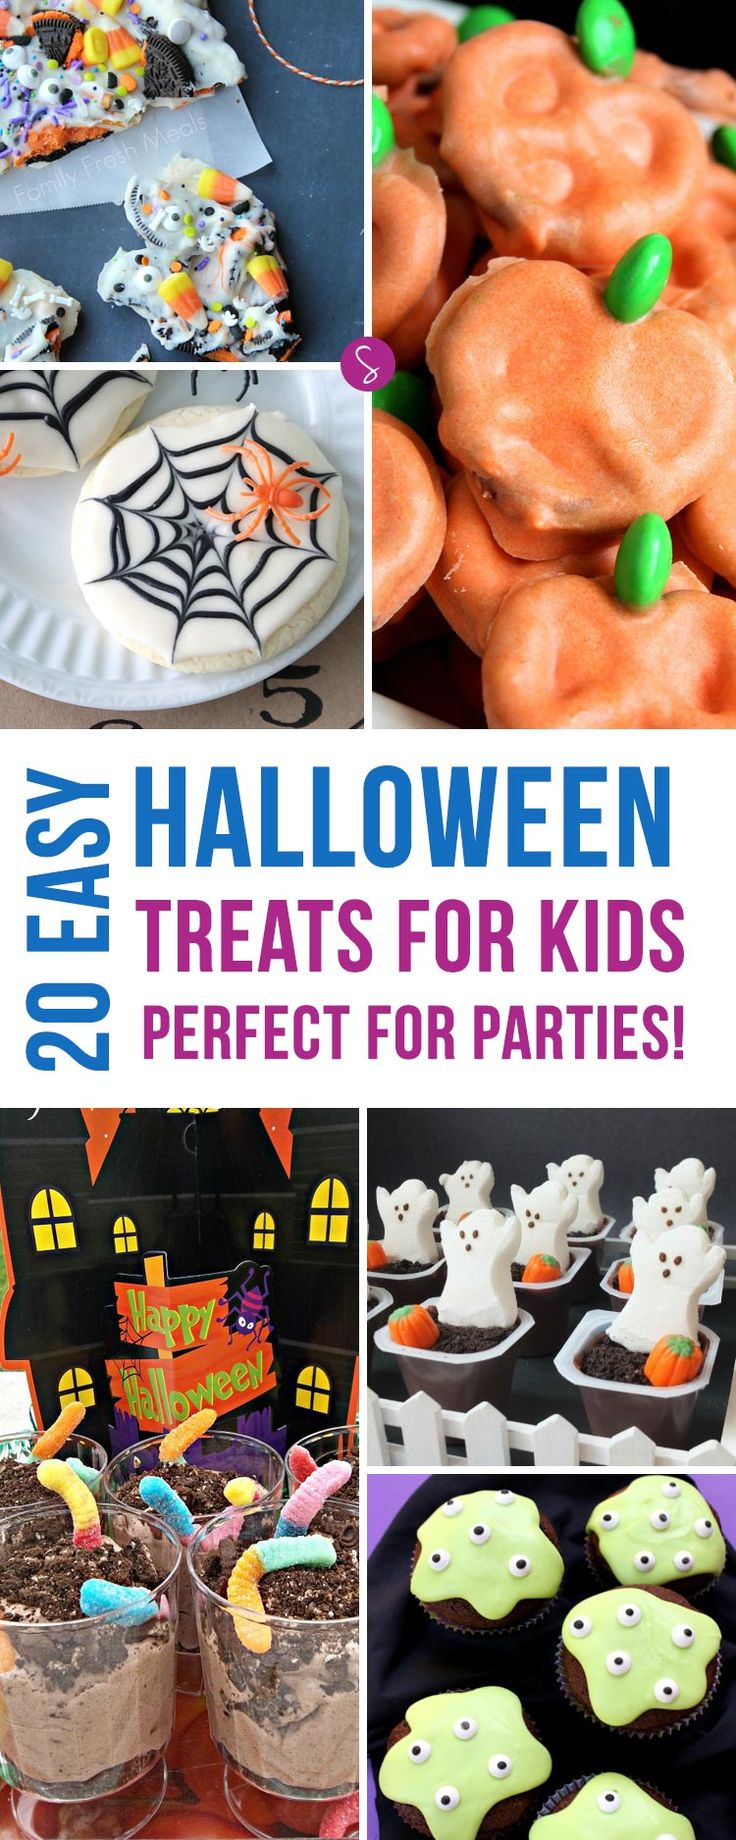 So many great ideas here for sweet treats for Halloween - love those monster cookies!